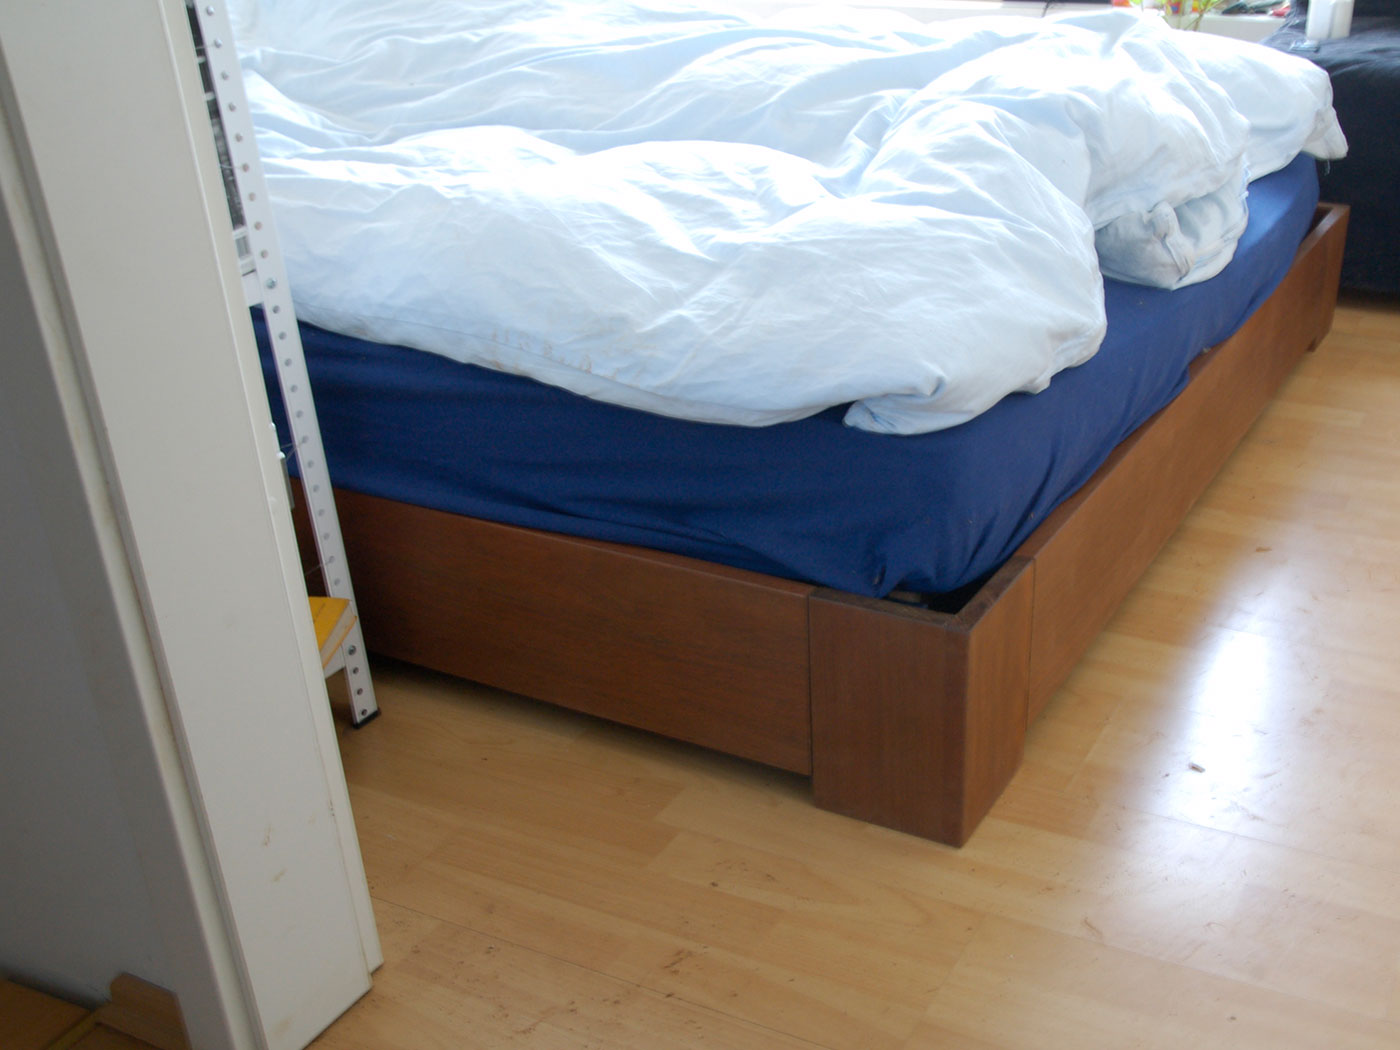 BED © 2009, solid South American walnut, fibre glass, oiled, 200 x 160 x 70 cm